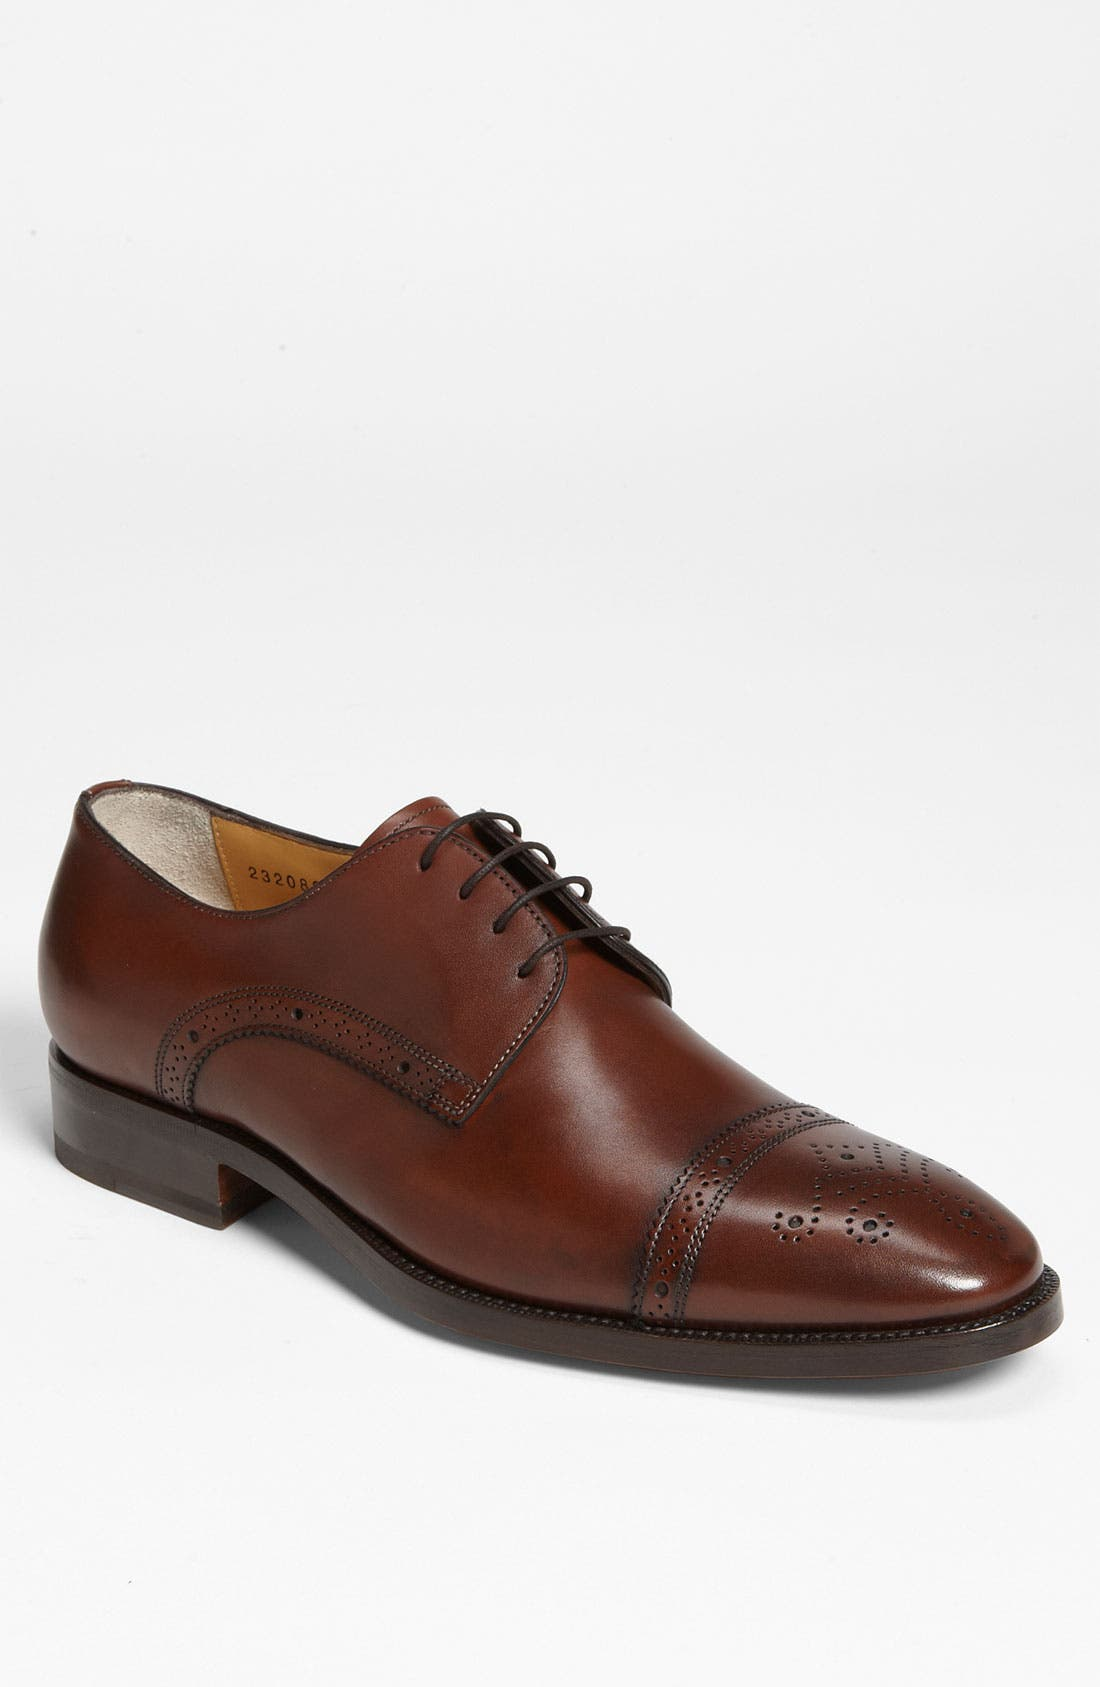 Main Image - Santoni 'Quebec' Cap Toe Oxford